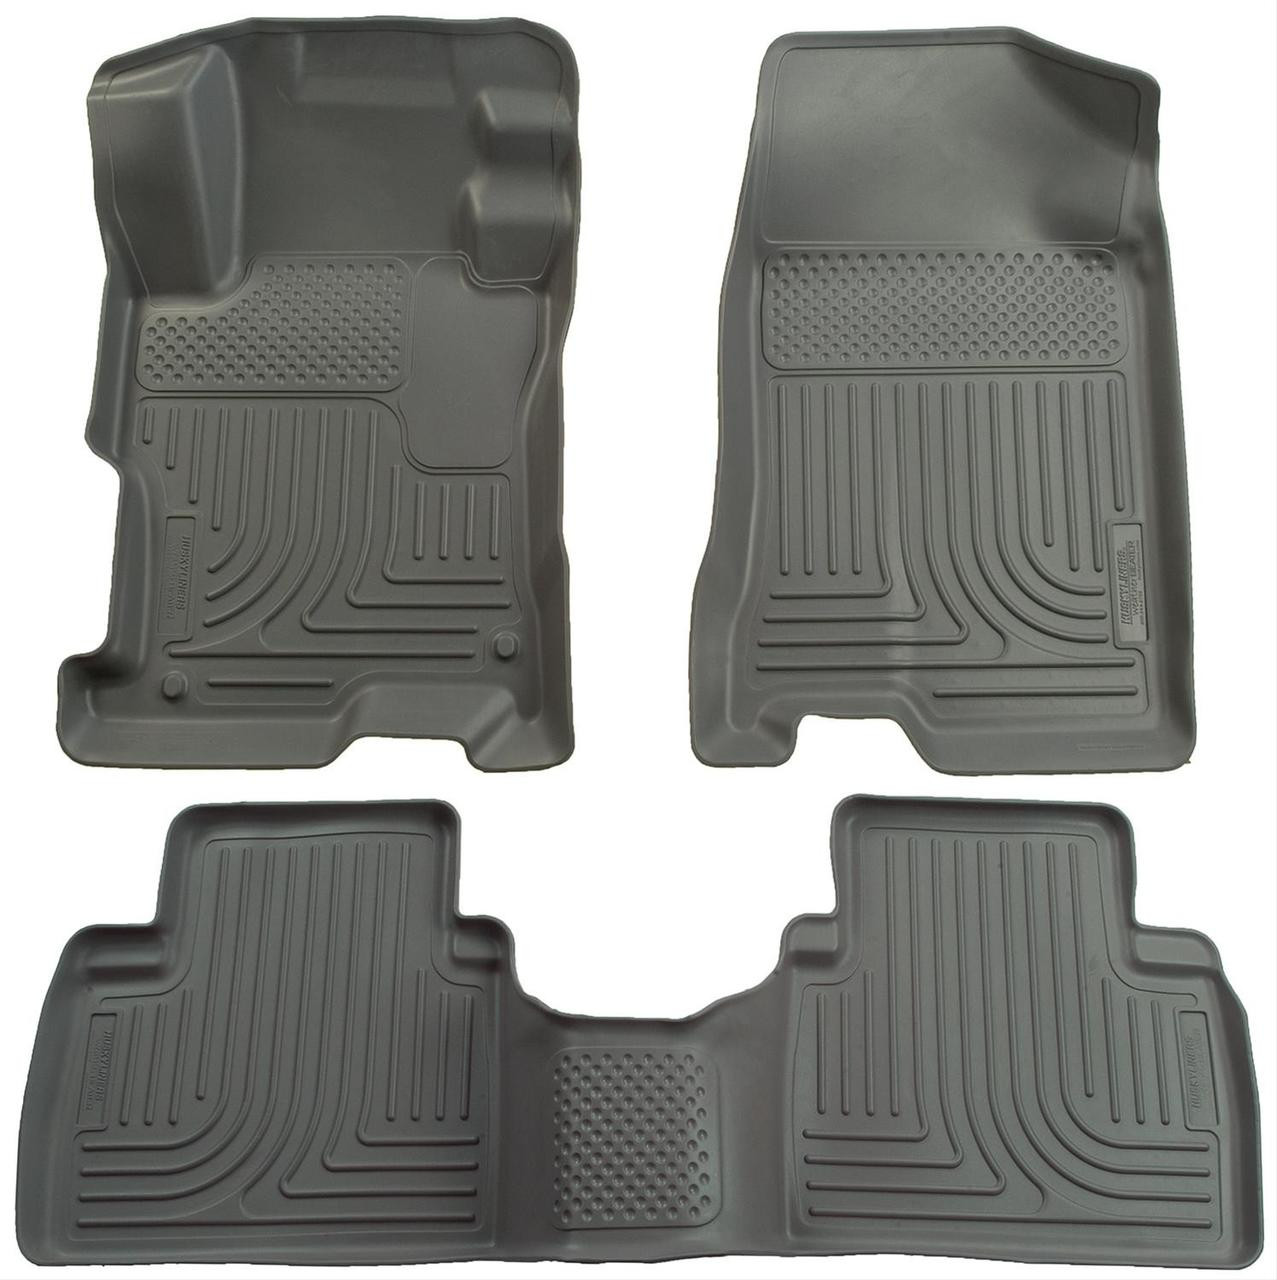 06-11 CIVIC 4-DOOR FRONT AND SECOND SEAT LINER GREY